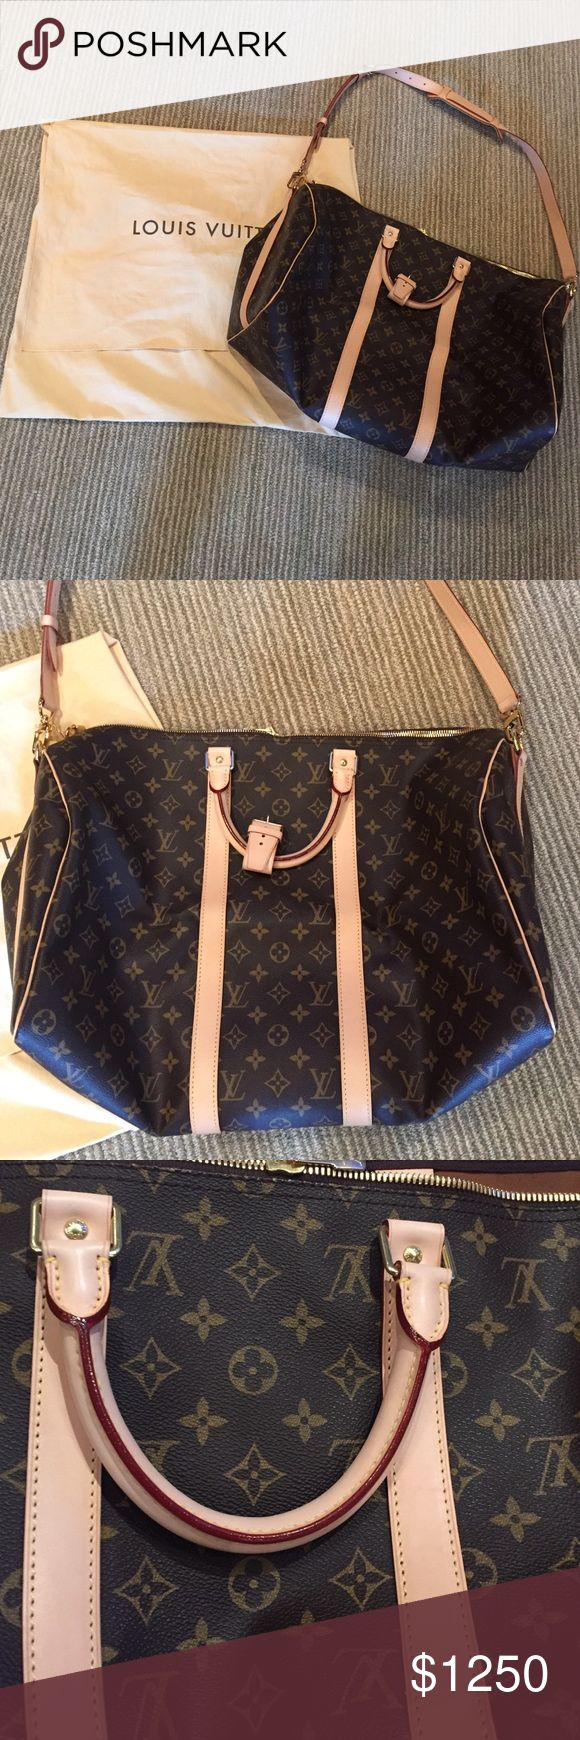 louis vuitton overnight bag. louis vuitton keepall 55. new with dustbag overnight bag